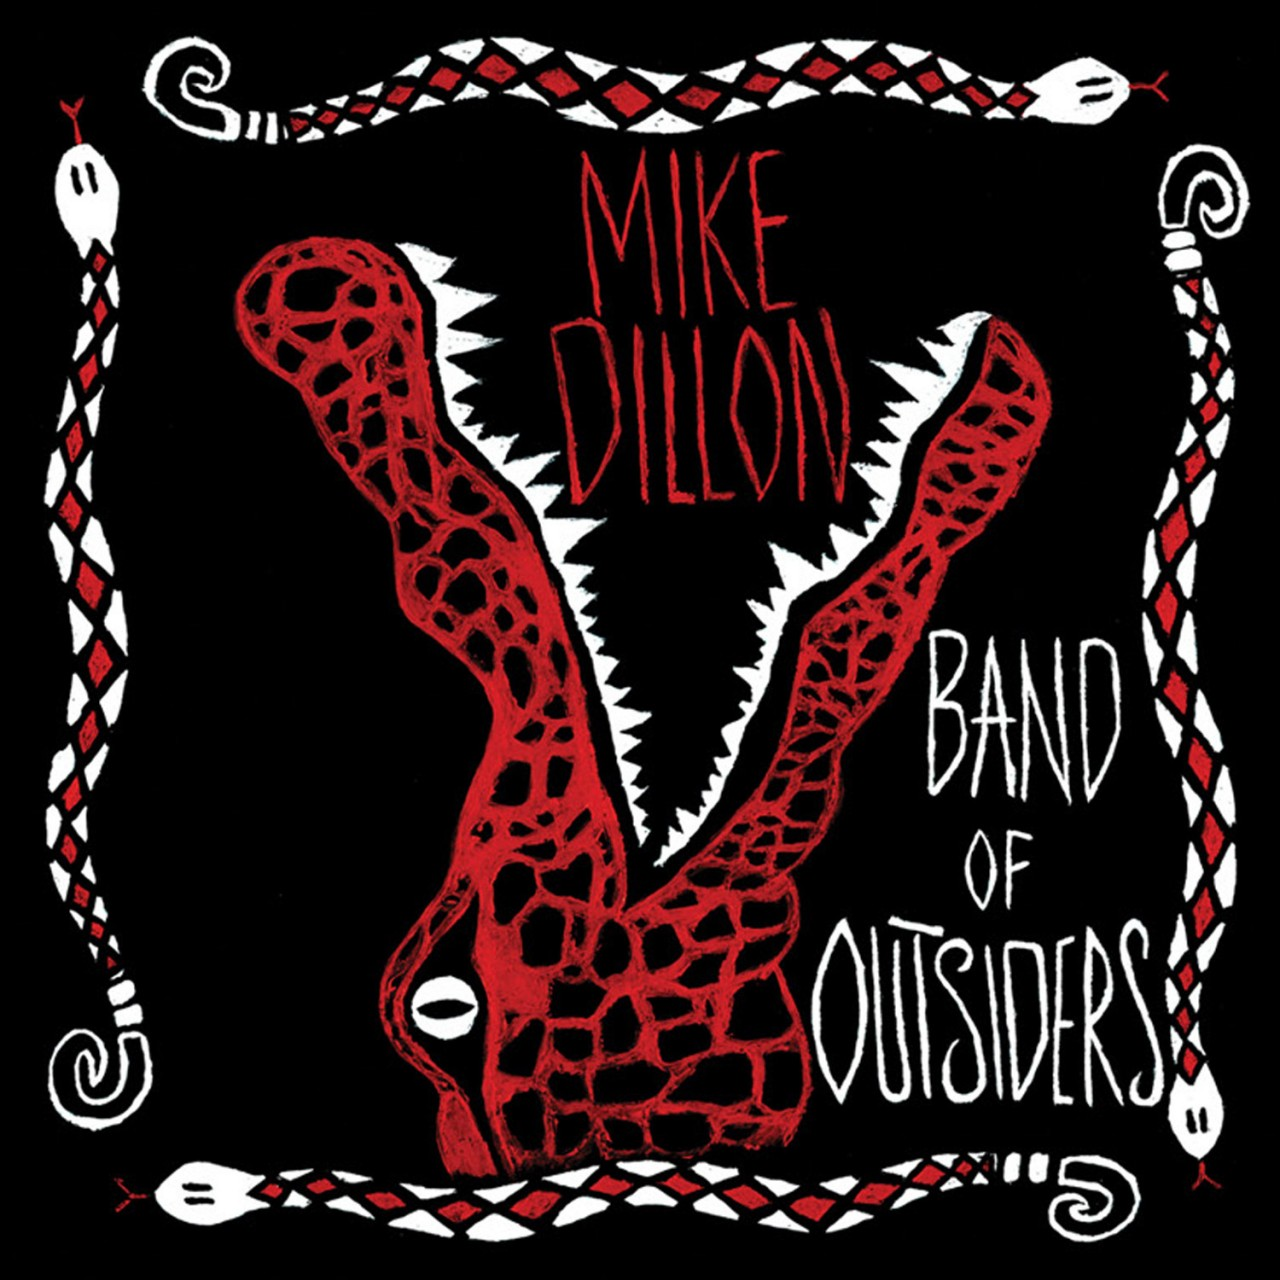 Mike Dillon Band of Outsiders